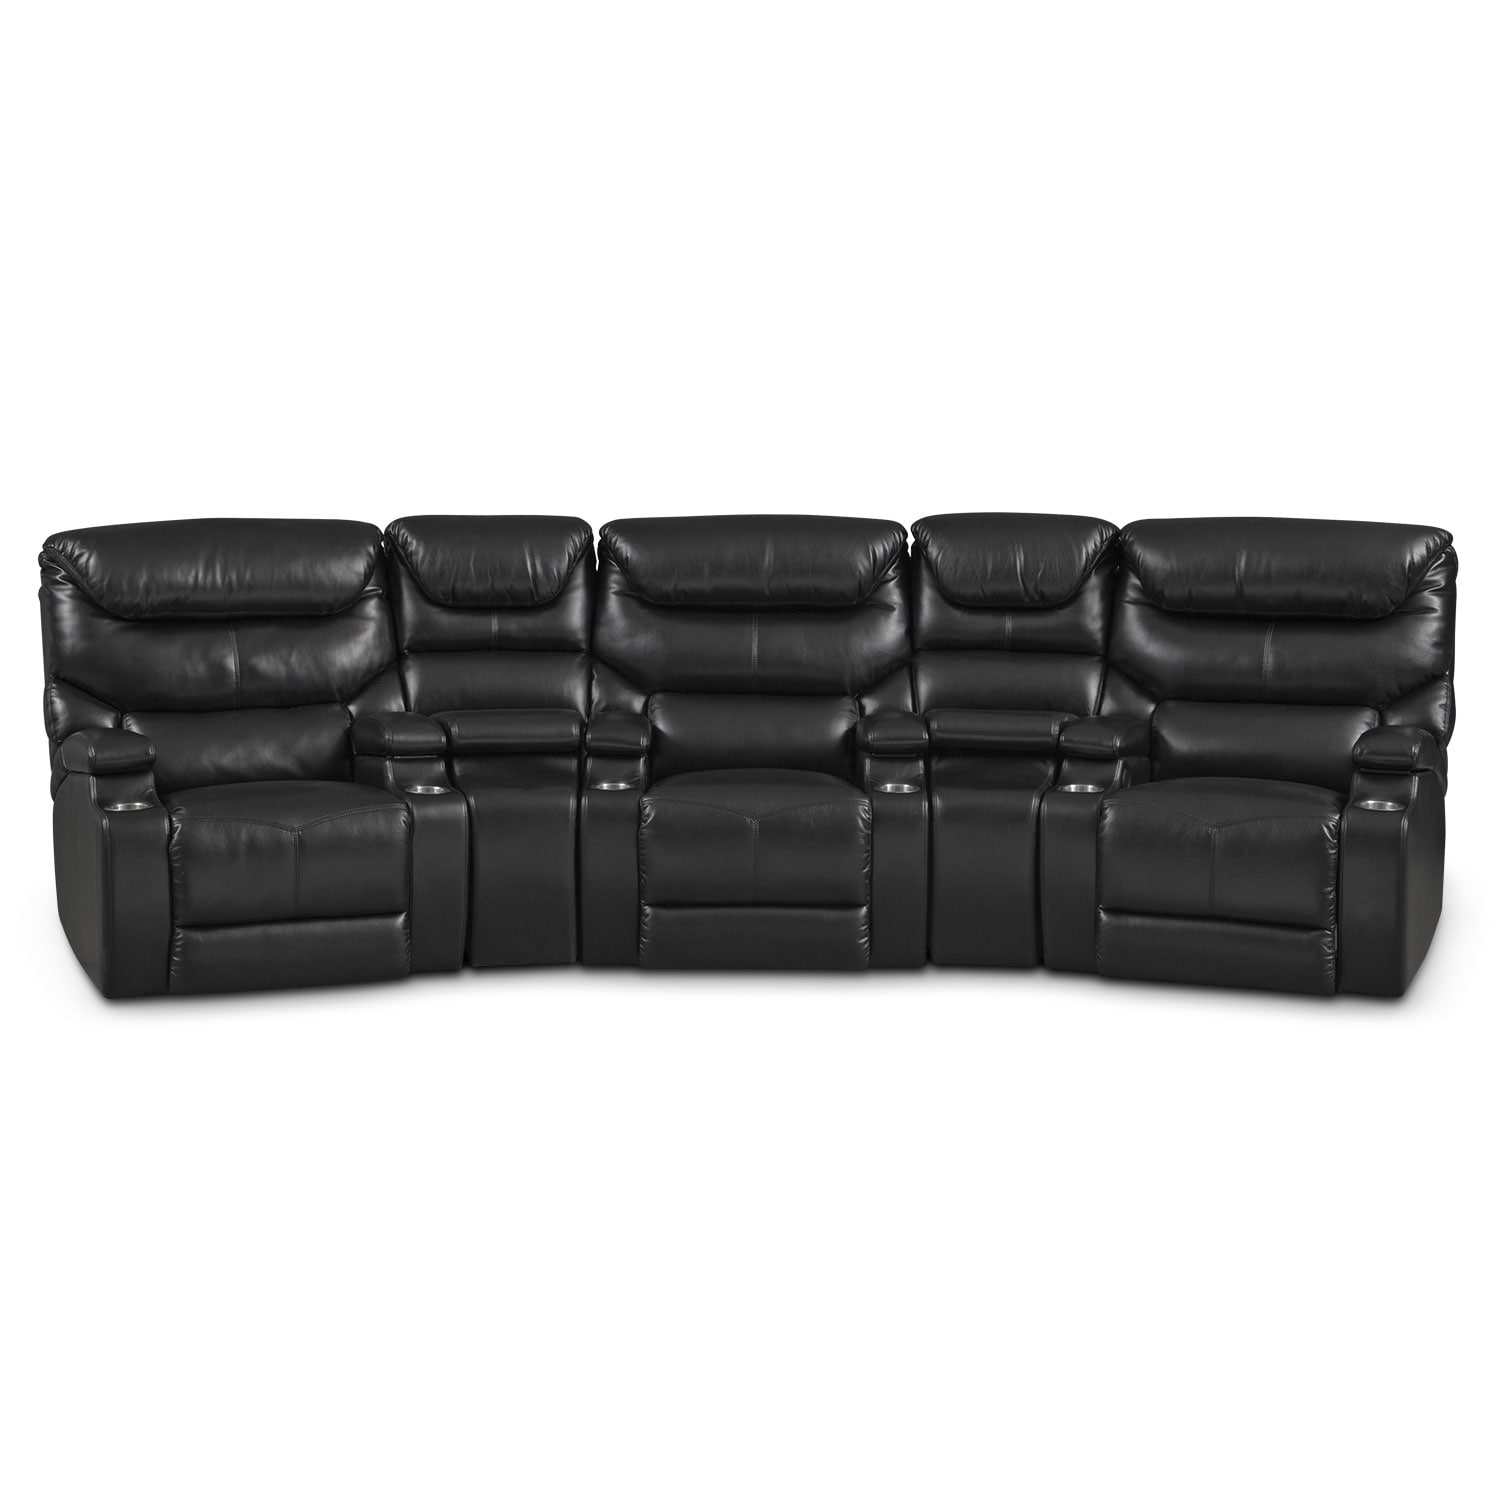 Living Room Furniture - Jupiter 5-Piece Power Reclining Home Theater Sectional - Black